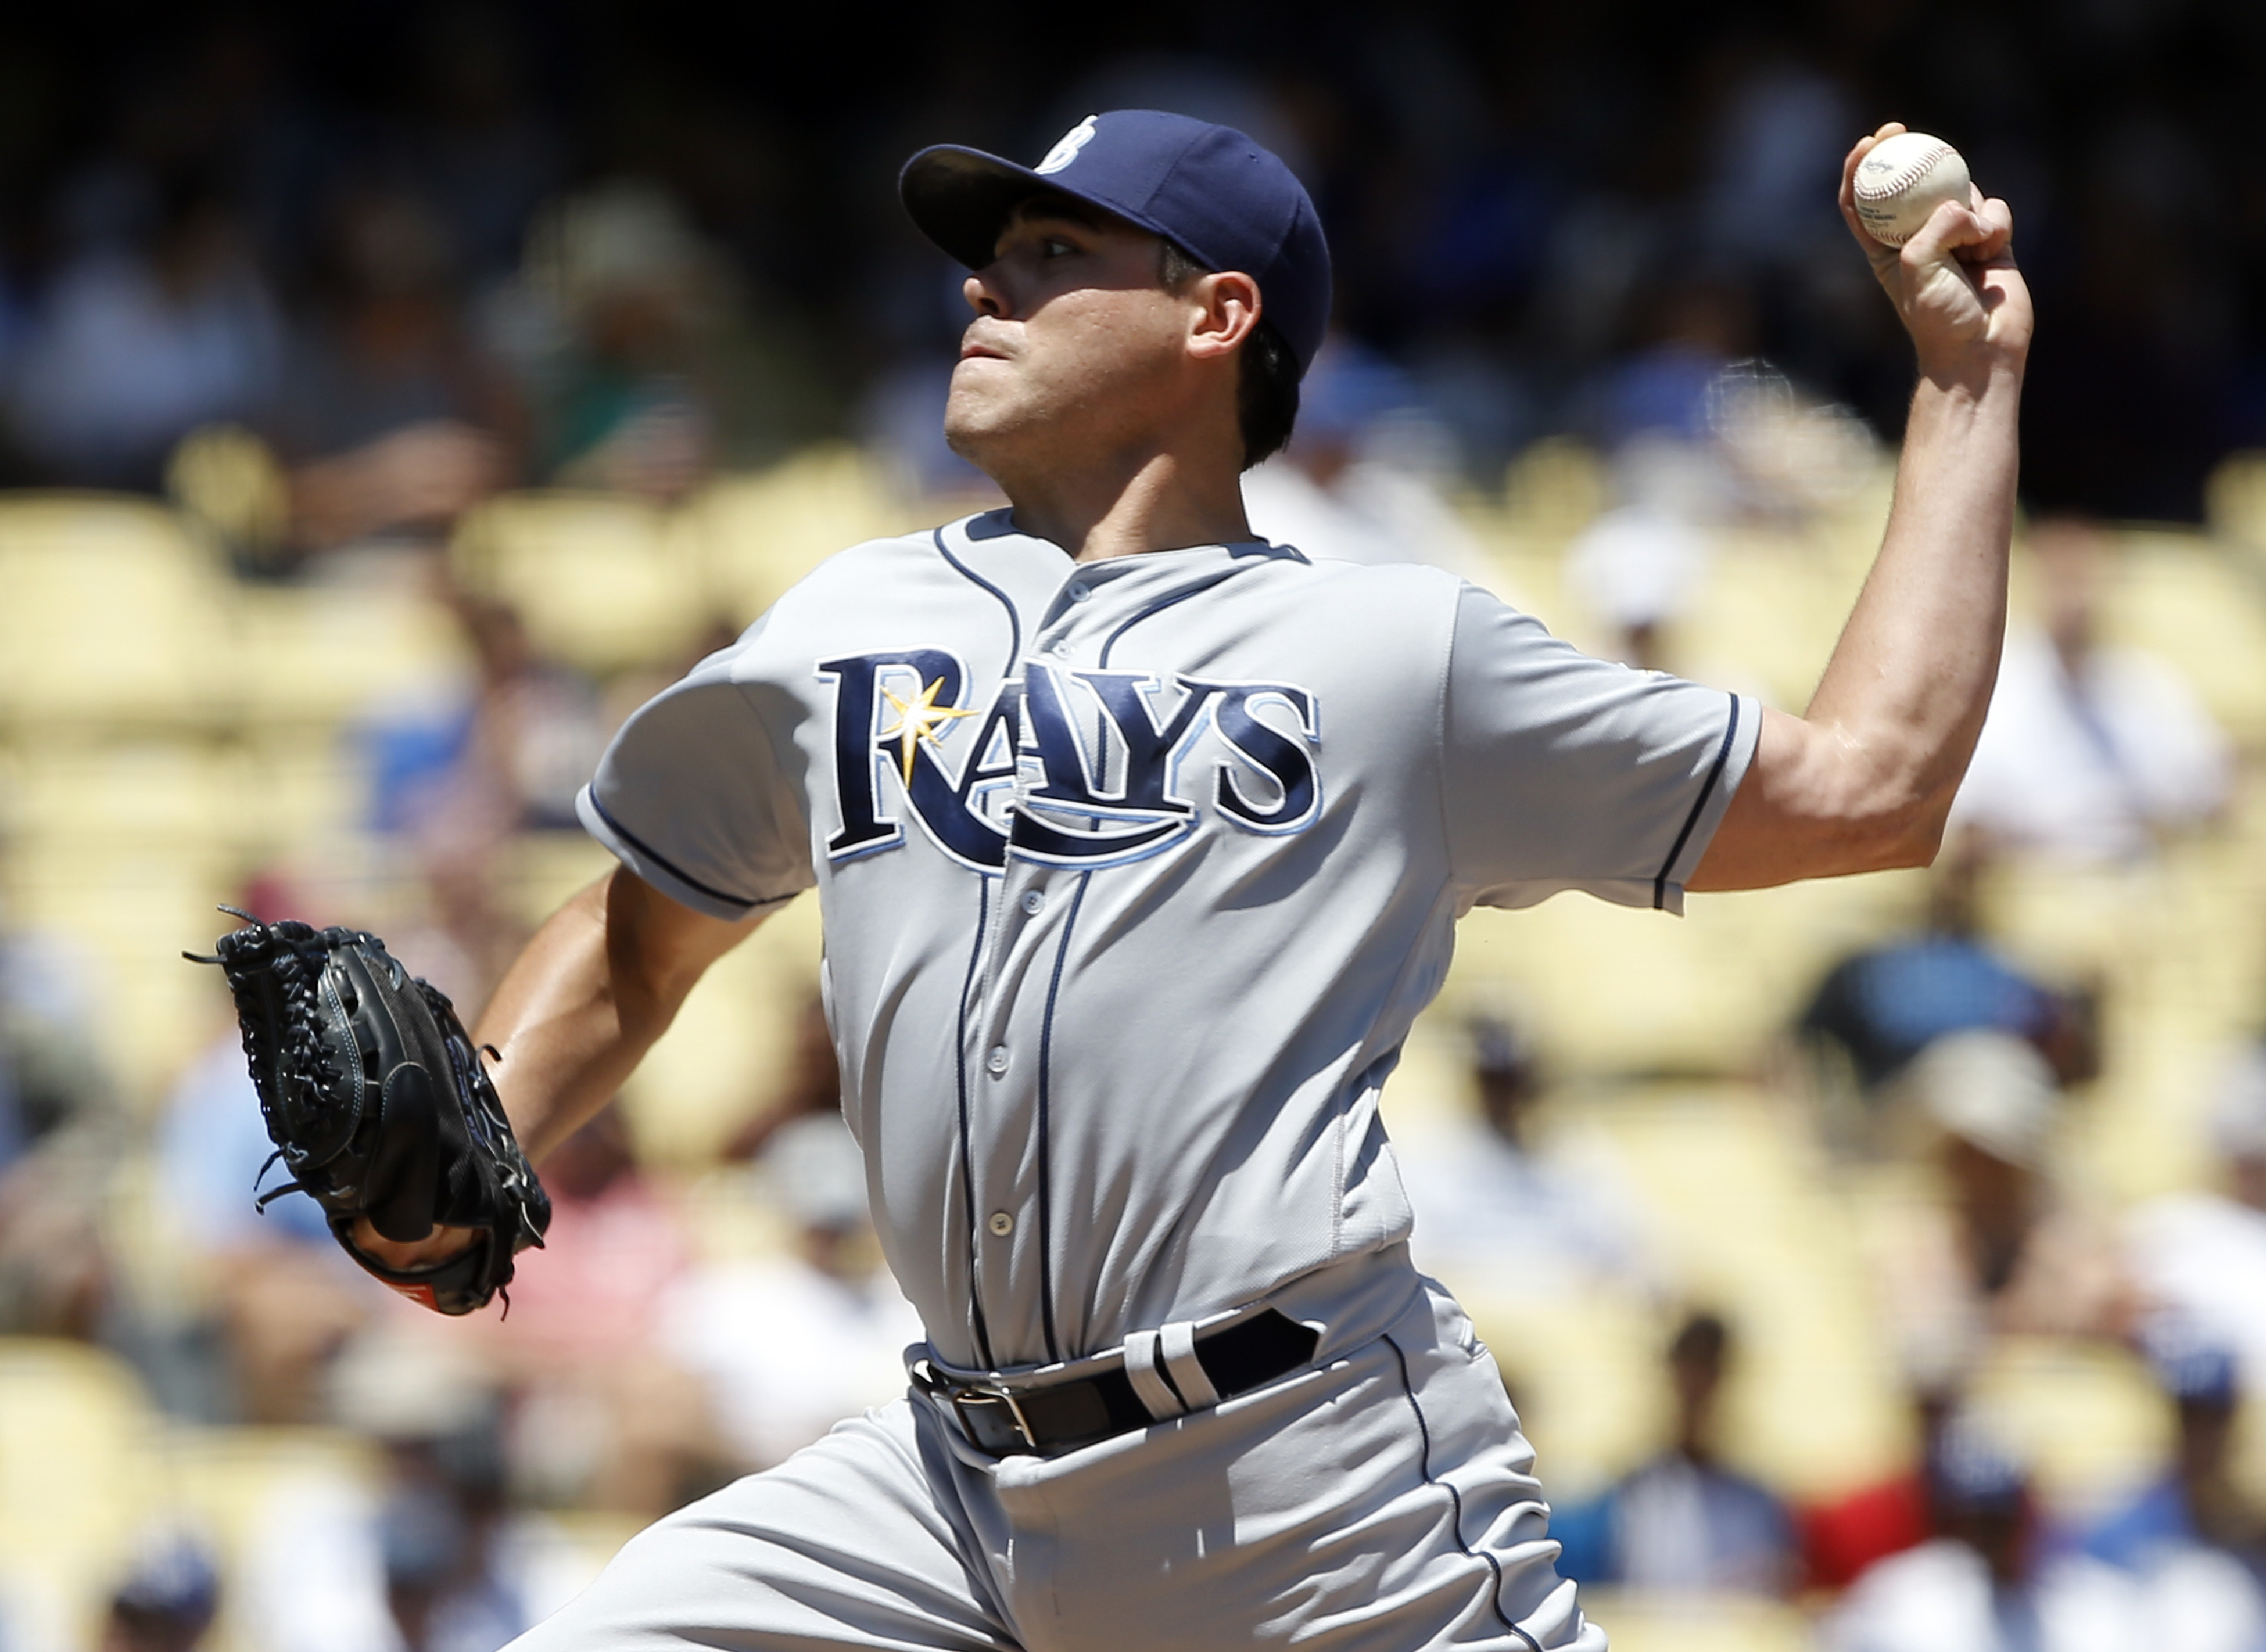 Tampa Bay Rays starting pitcher Matt Moore throws to the plate against the Los Angeles Dodgers during the second inning inning of a baseball game in Los Angeles, Wednesday, July 27, 2016. (AP Photo/Alex Gallardo)